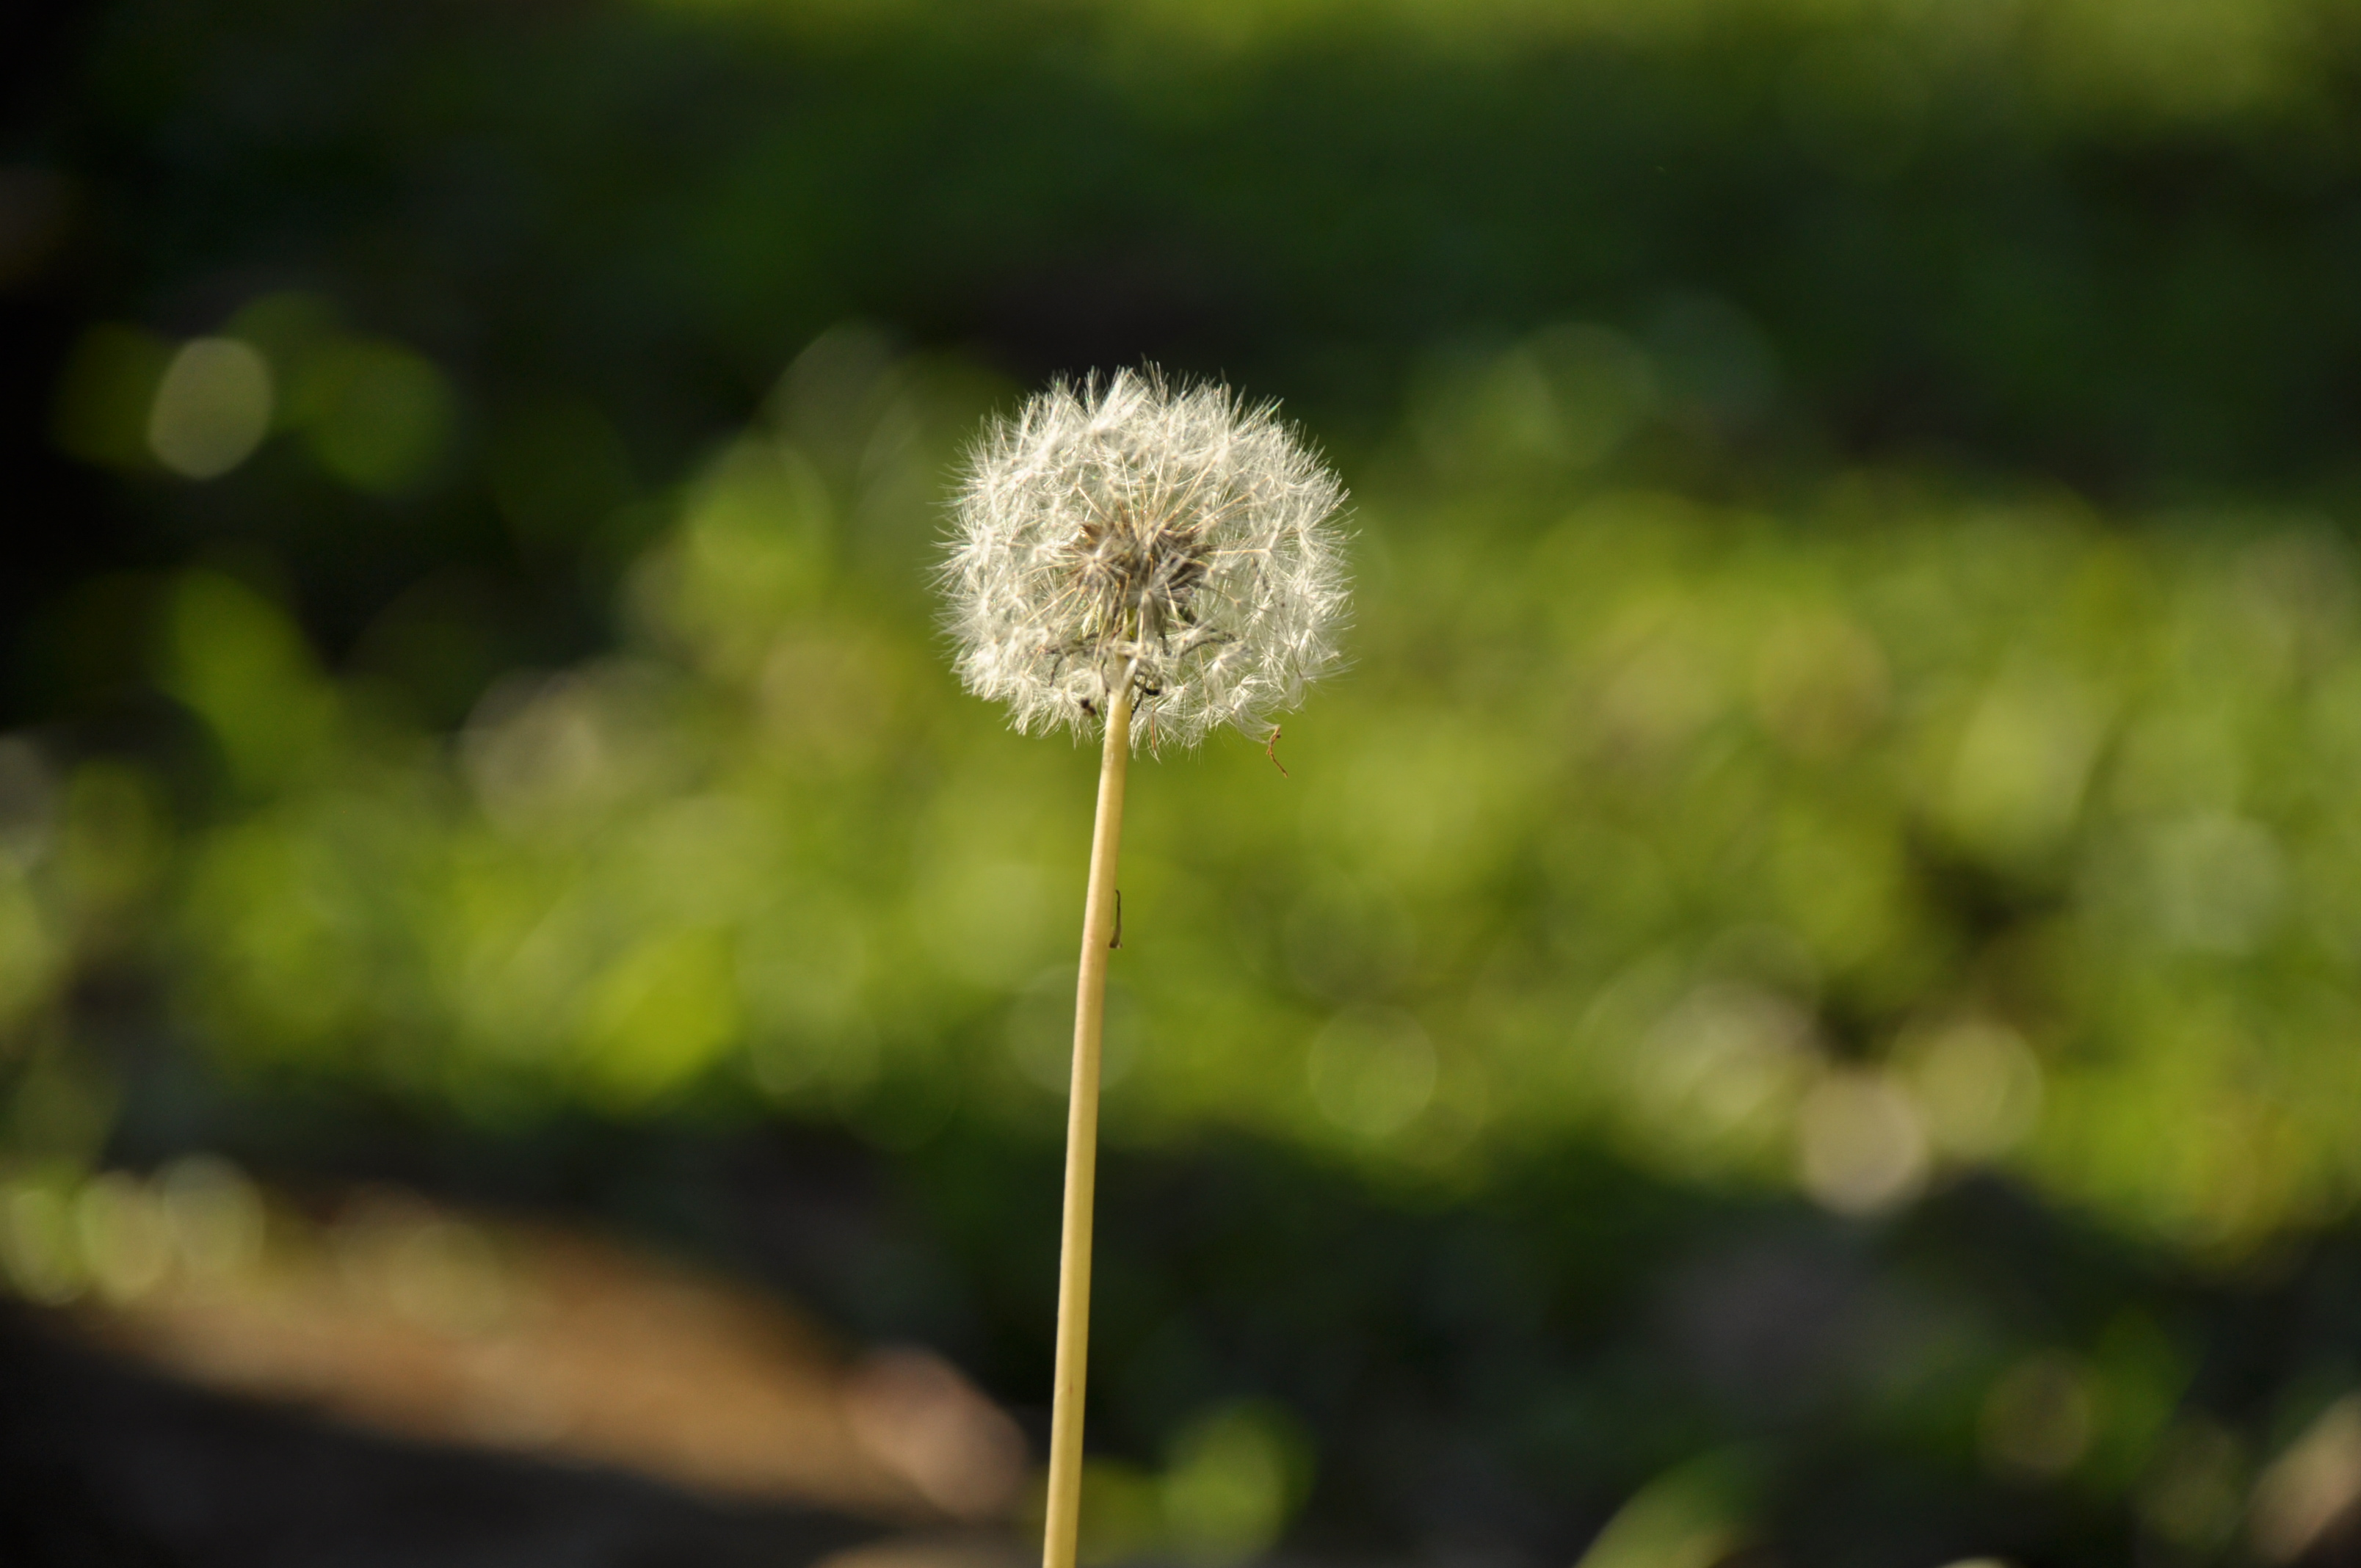 Apps For Iphone X Wallpaper White Dandelion Flower In Close Up Photograph 183 Free Stock